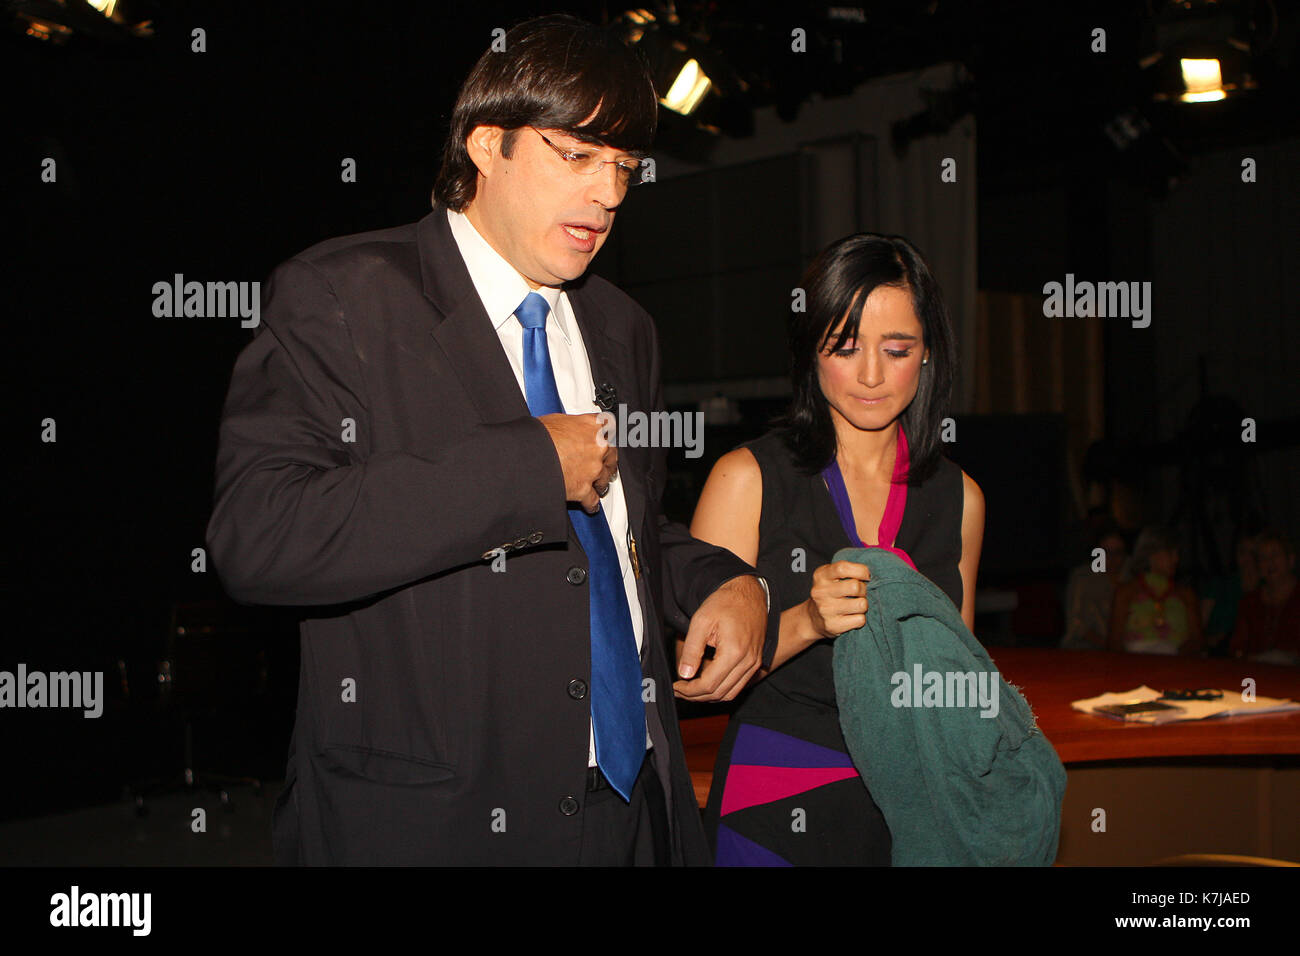 Page 3 Bayly High Resolution Stock Photography And Images Alamy Tm + © 2020 vimeo, inc. https www alamy com miami florida july 14 julieta venegas interviewed by jaime bayly on image159599285 html